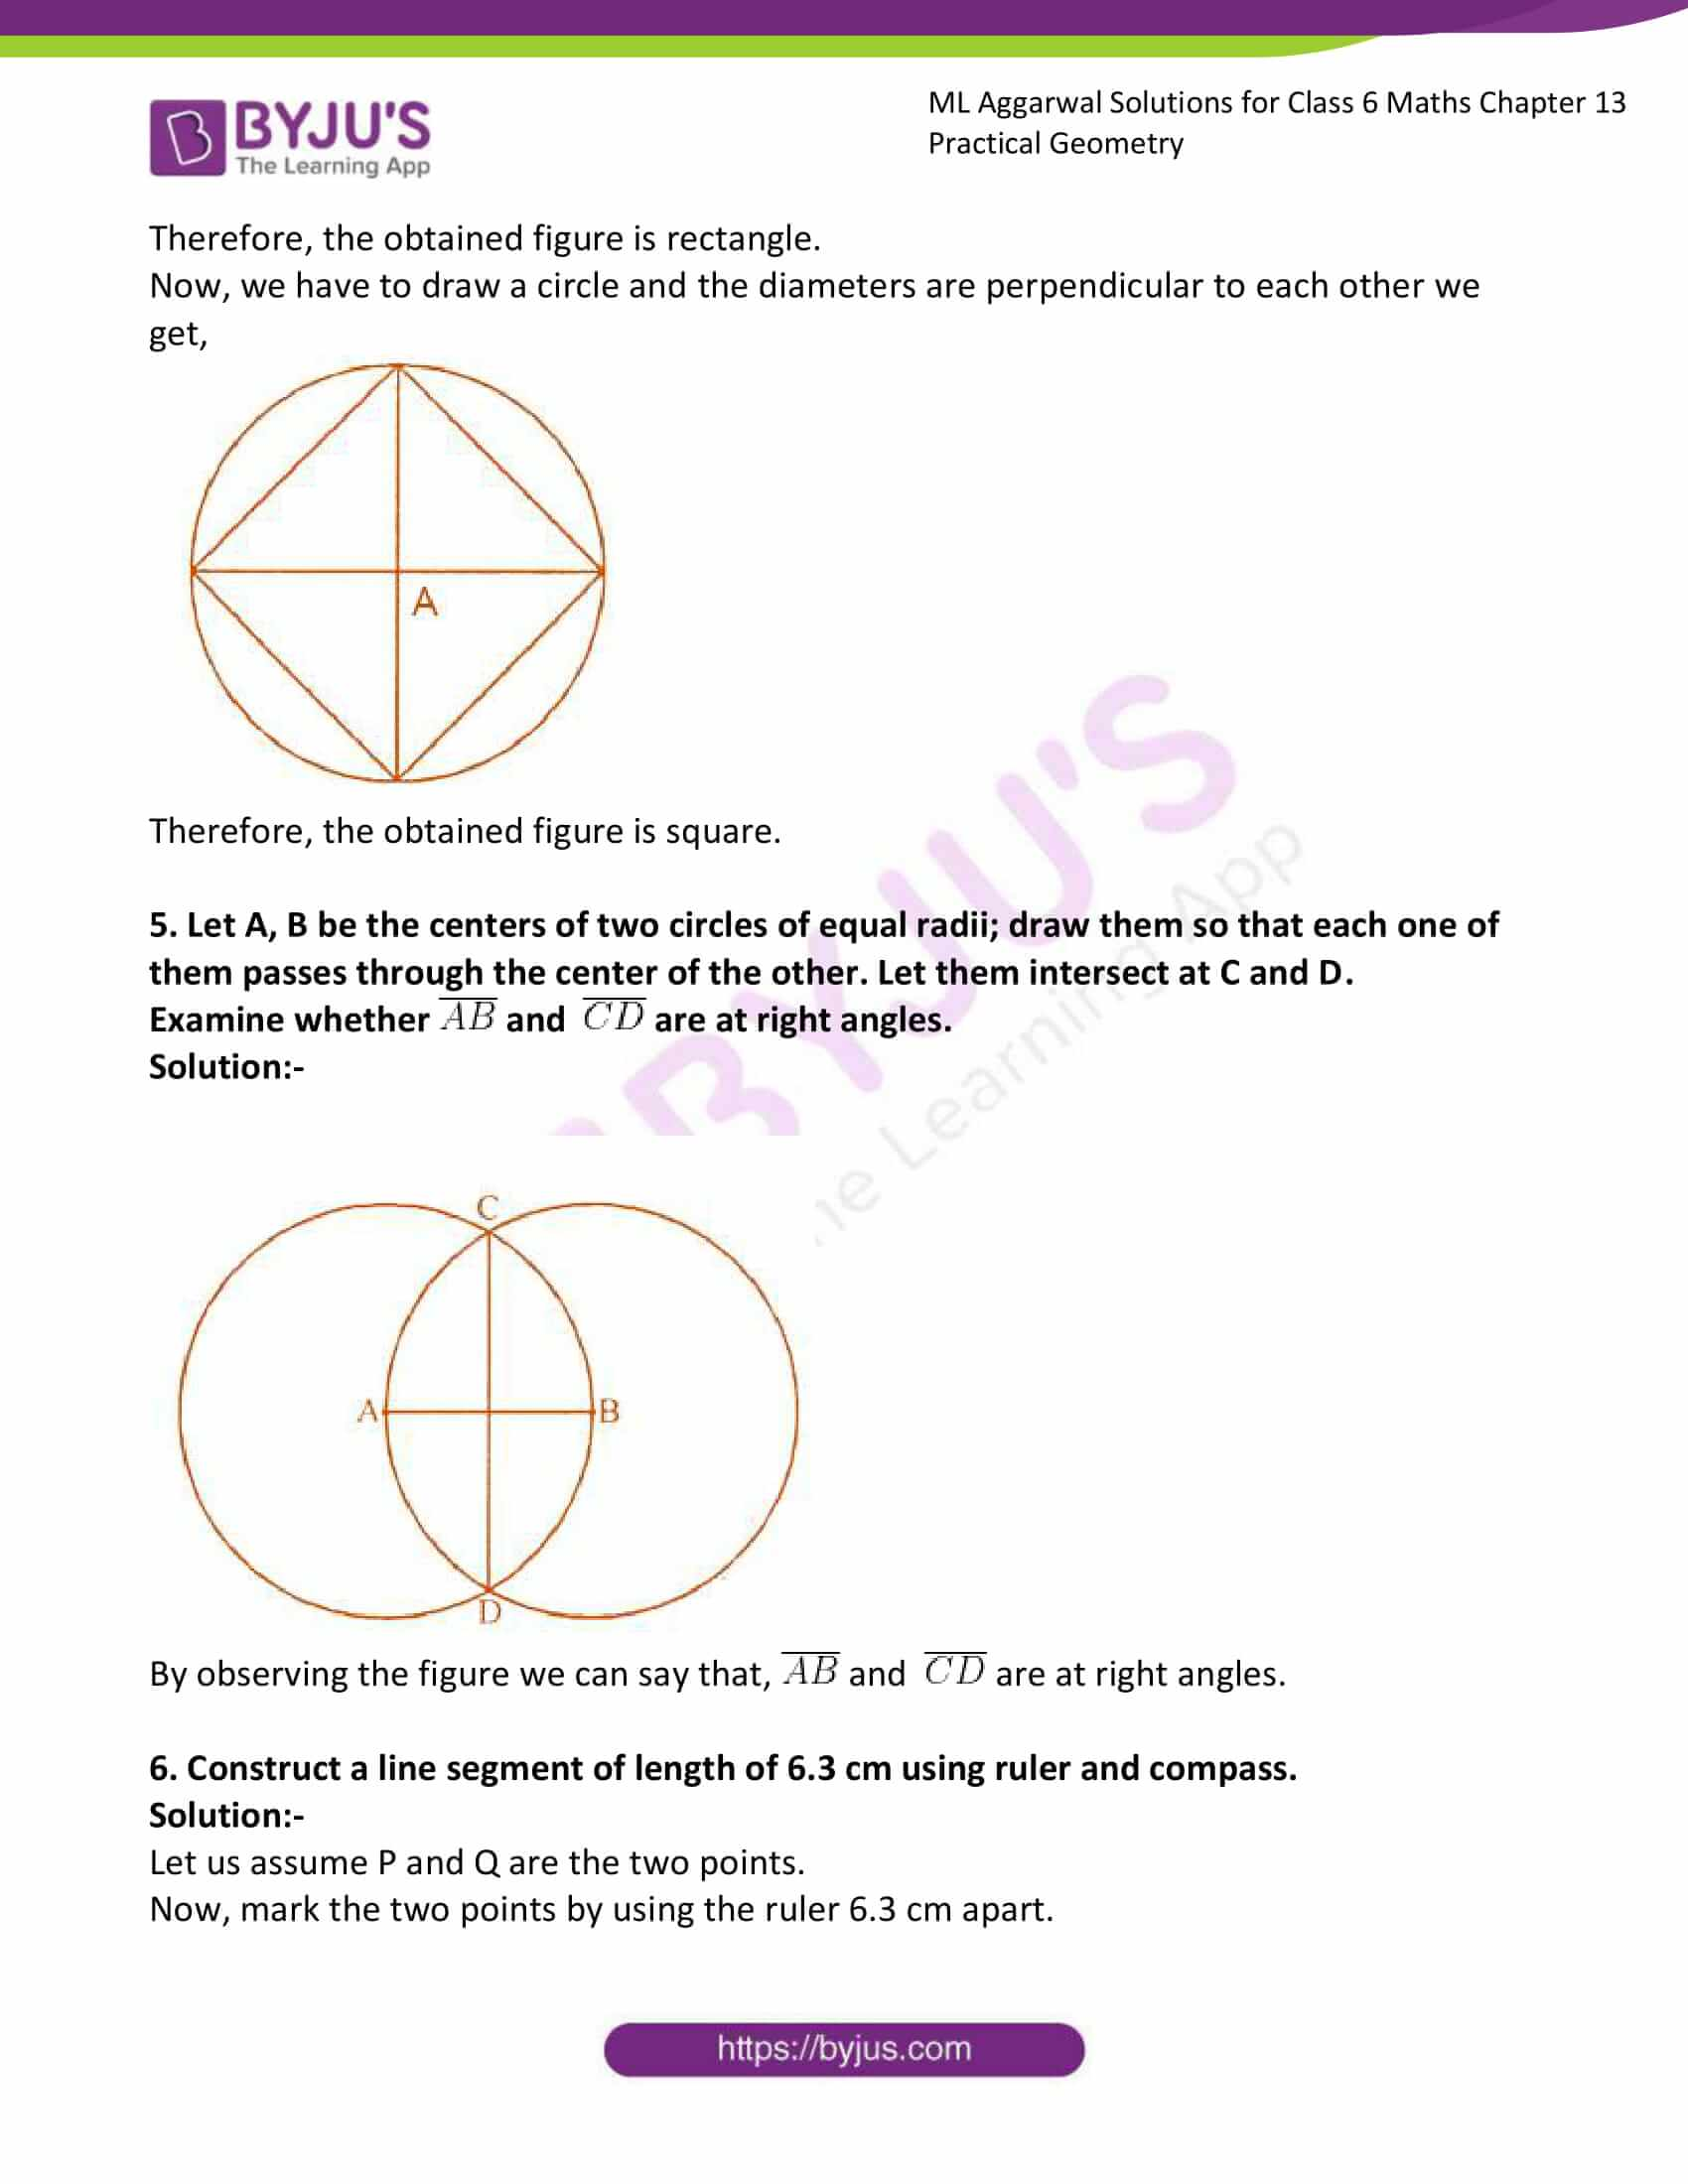 ml aggarwal solutions for class 6 maths chapter 13 5